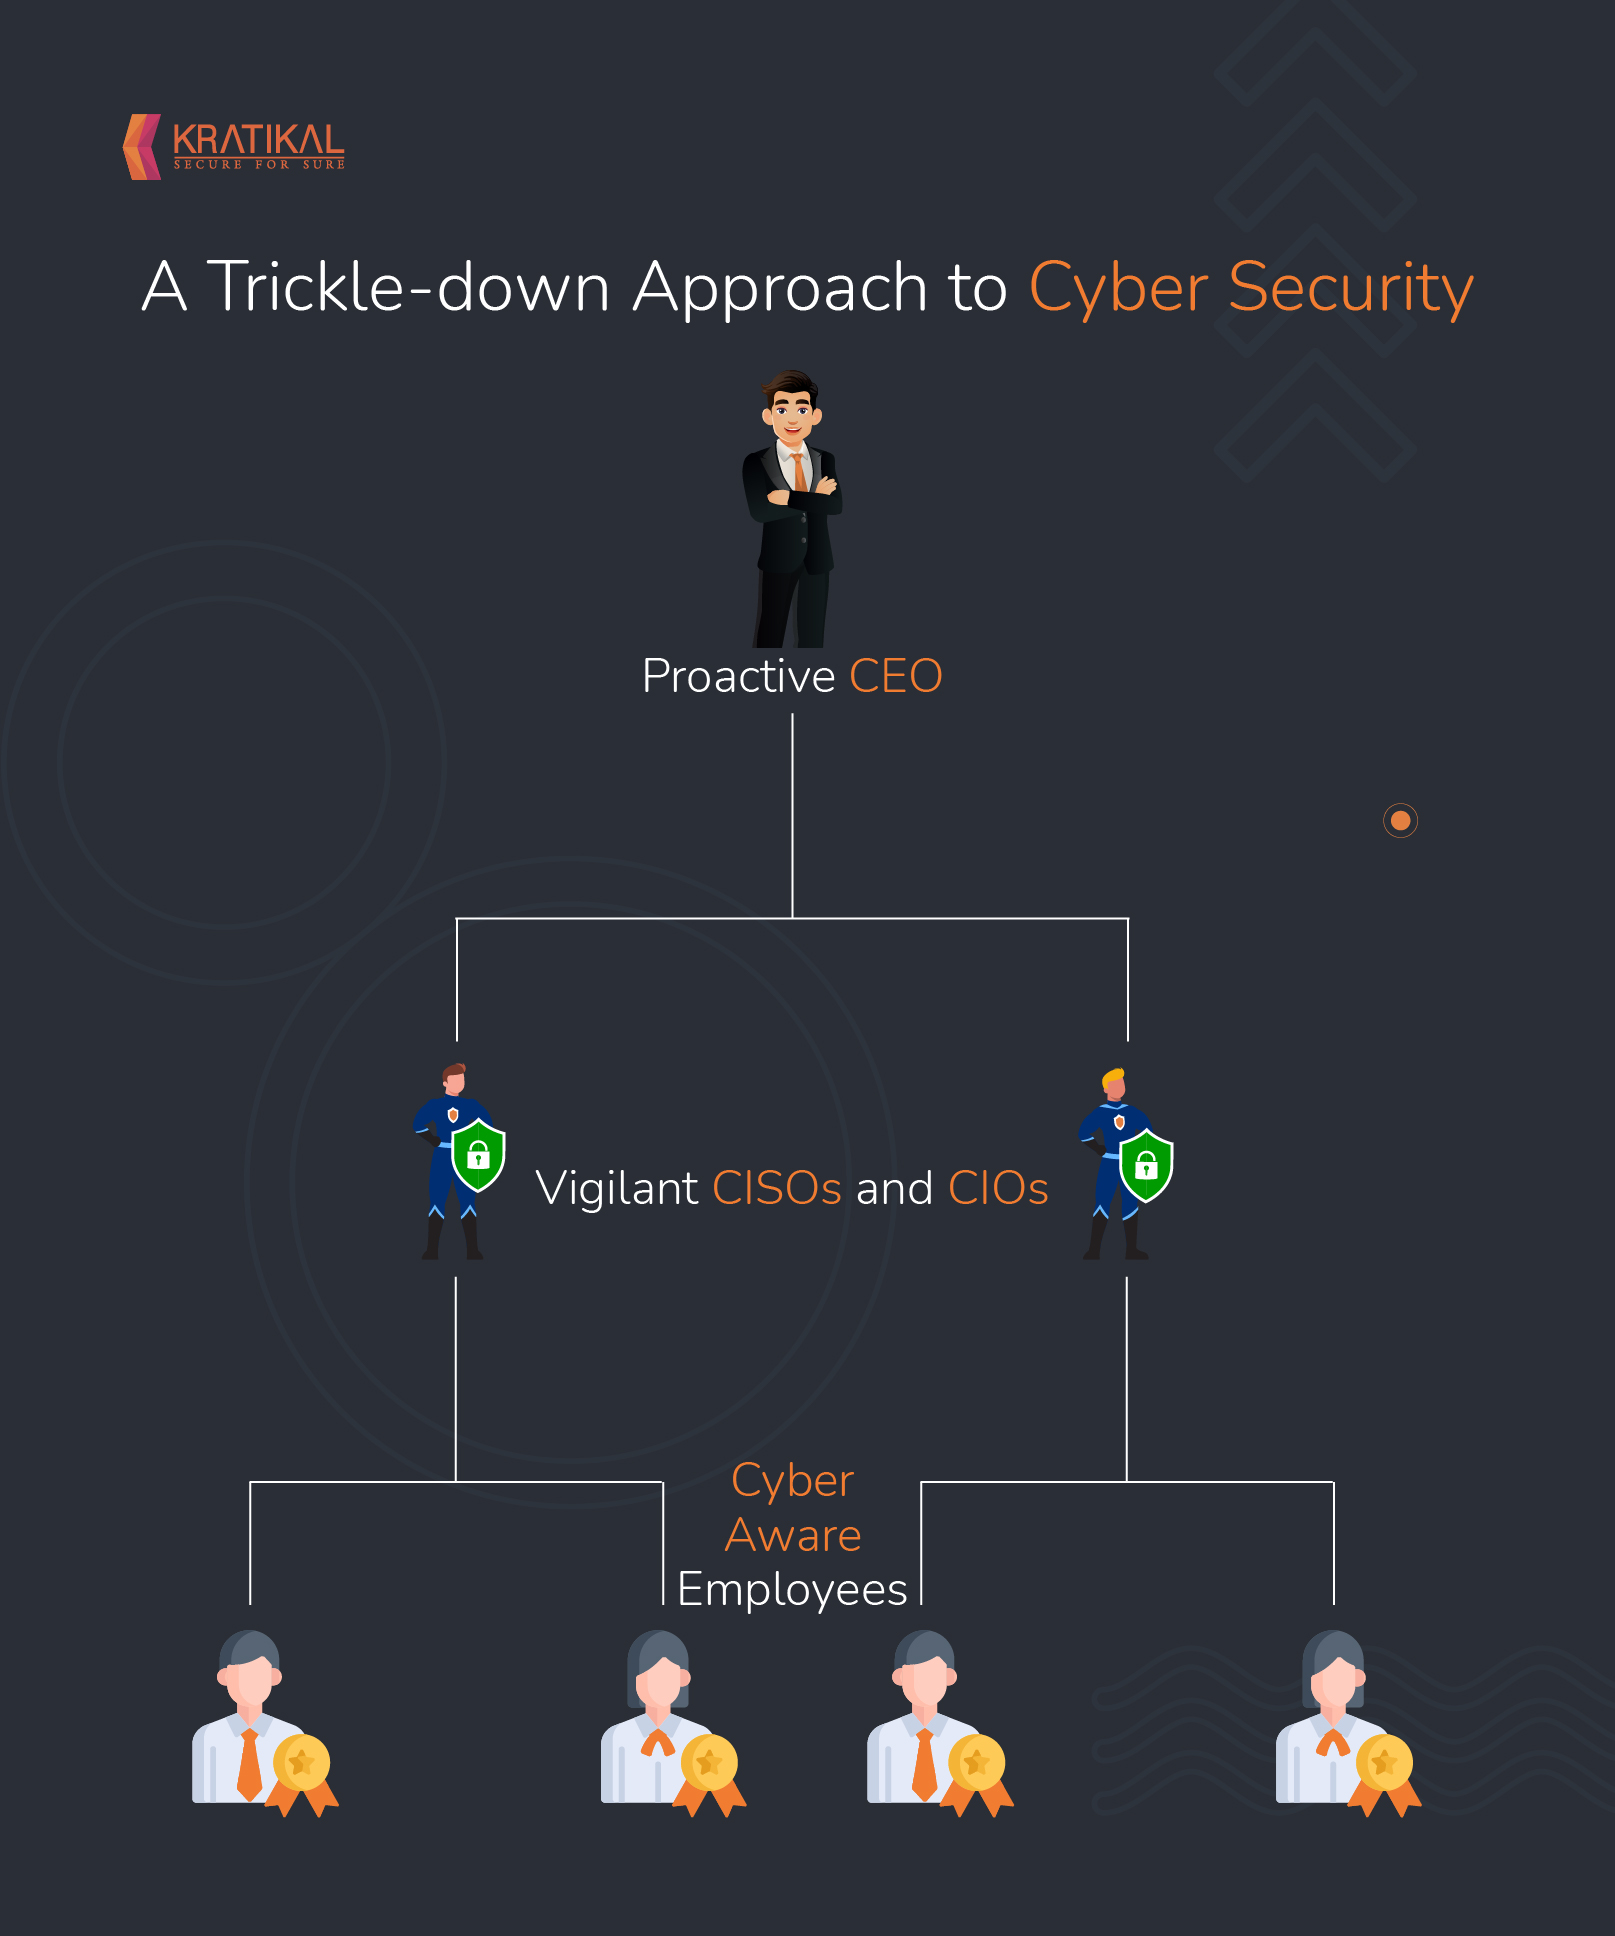 Why CEOs should get involved in cyber security